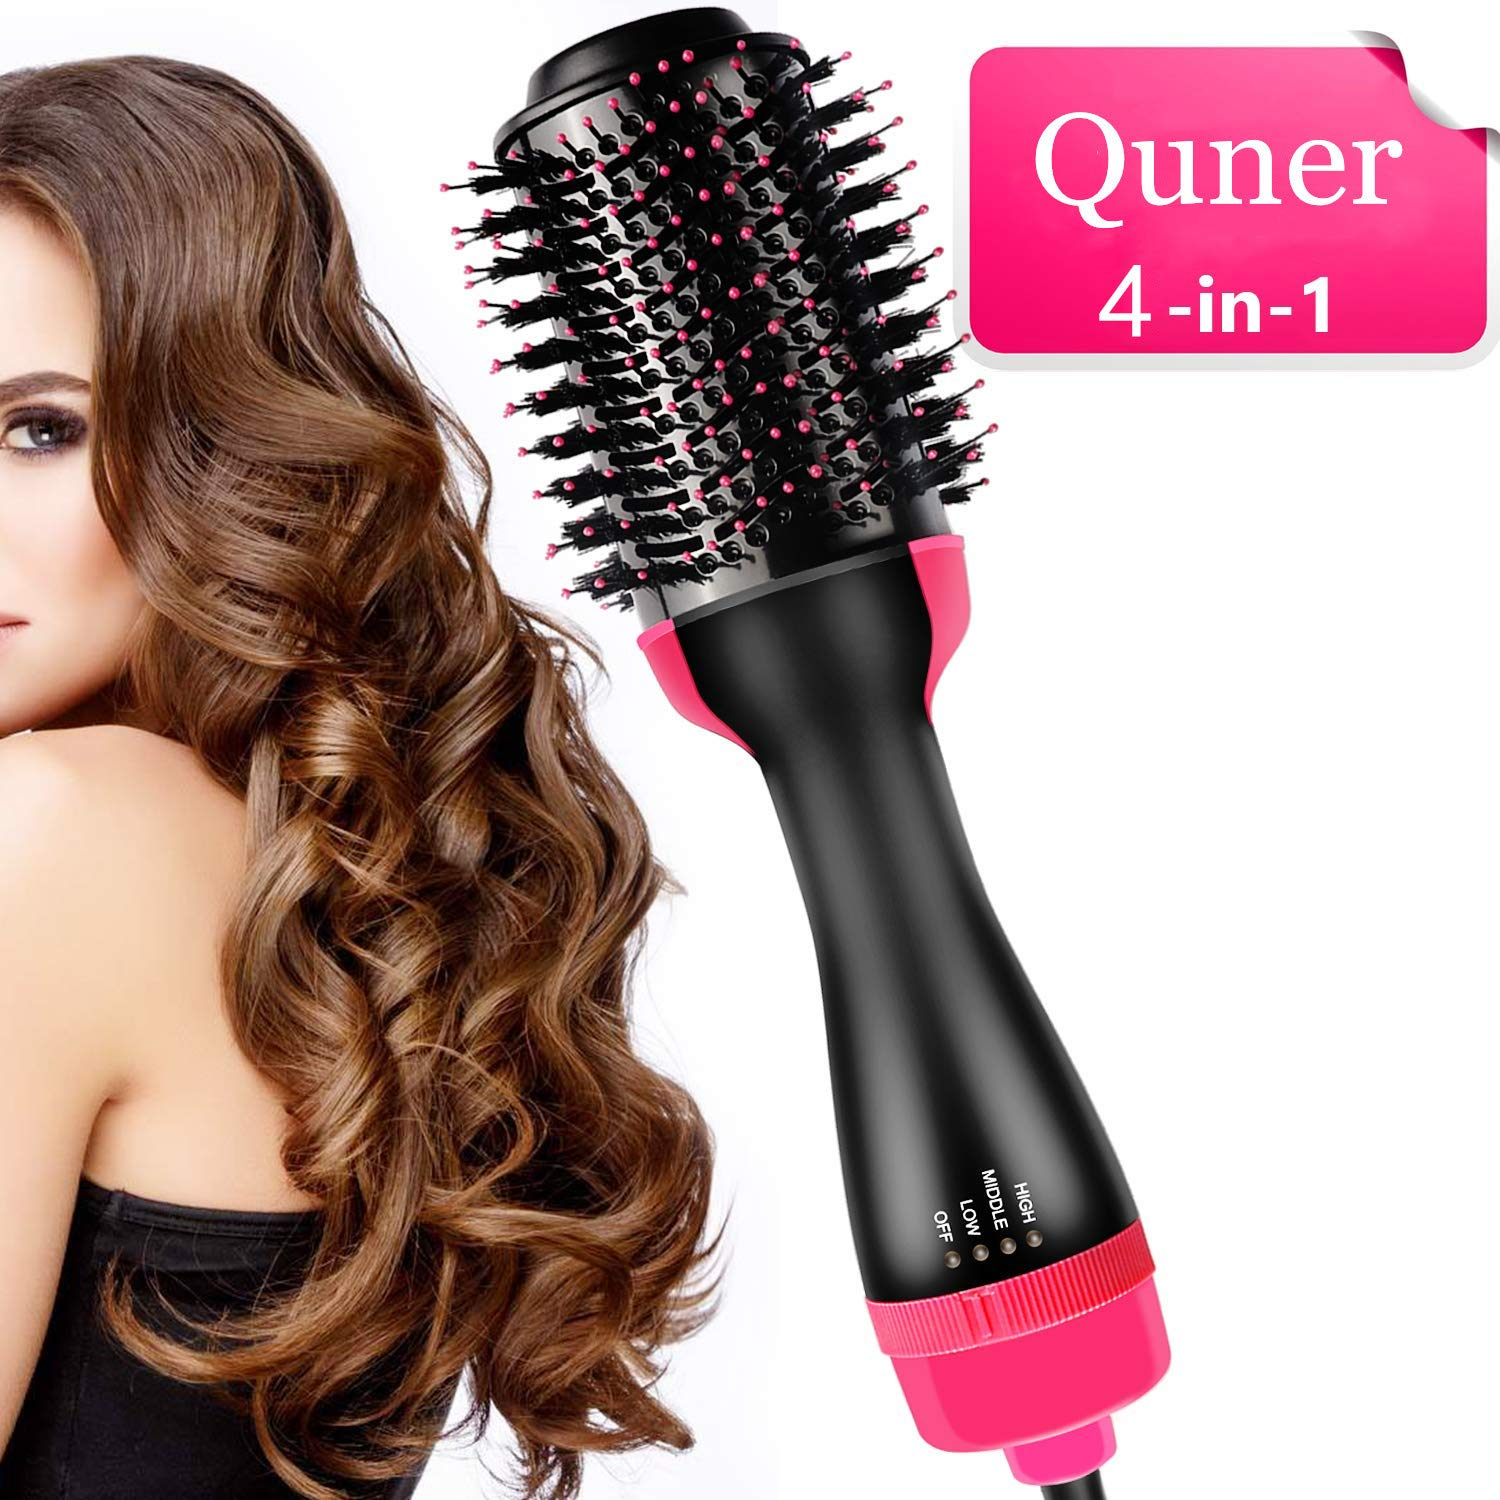 Hot Air Brush 4 in 1 One Step Ionic Hair Dryer Volumizer Smooth Frizz for Wet Straight Curly Hair